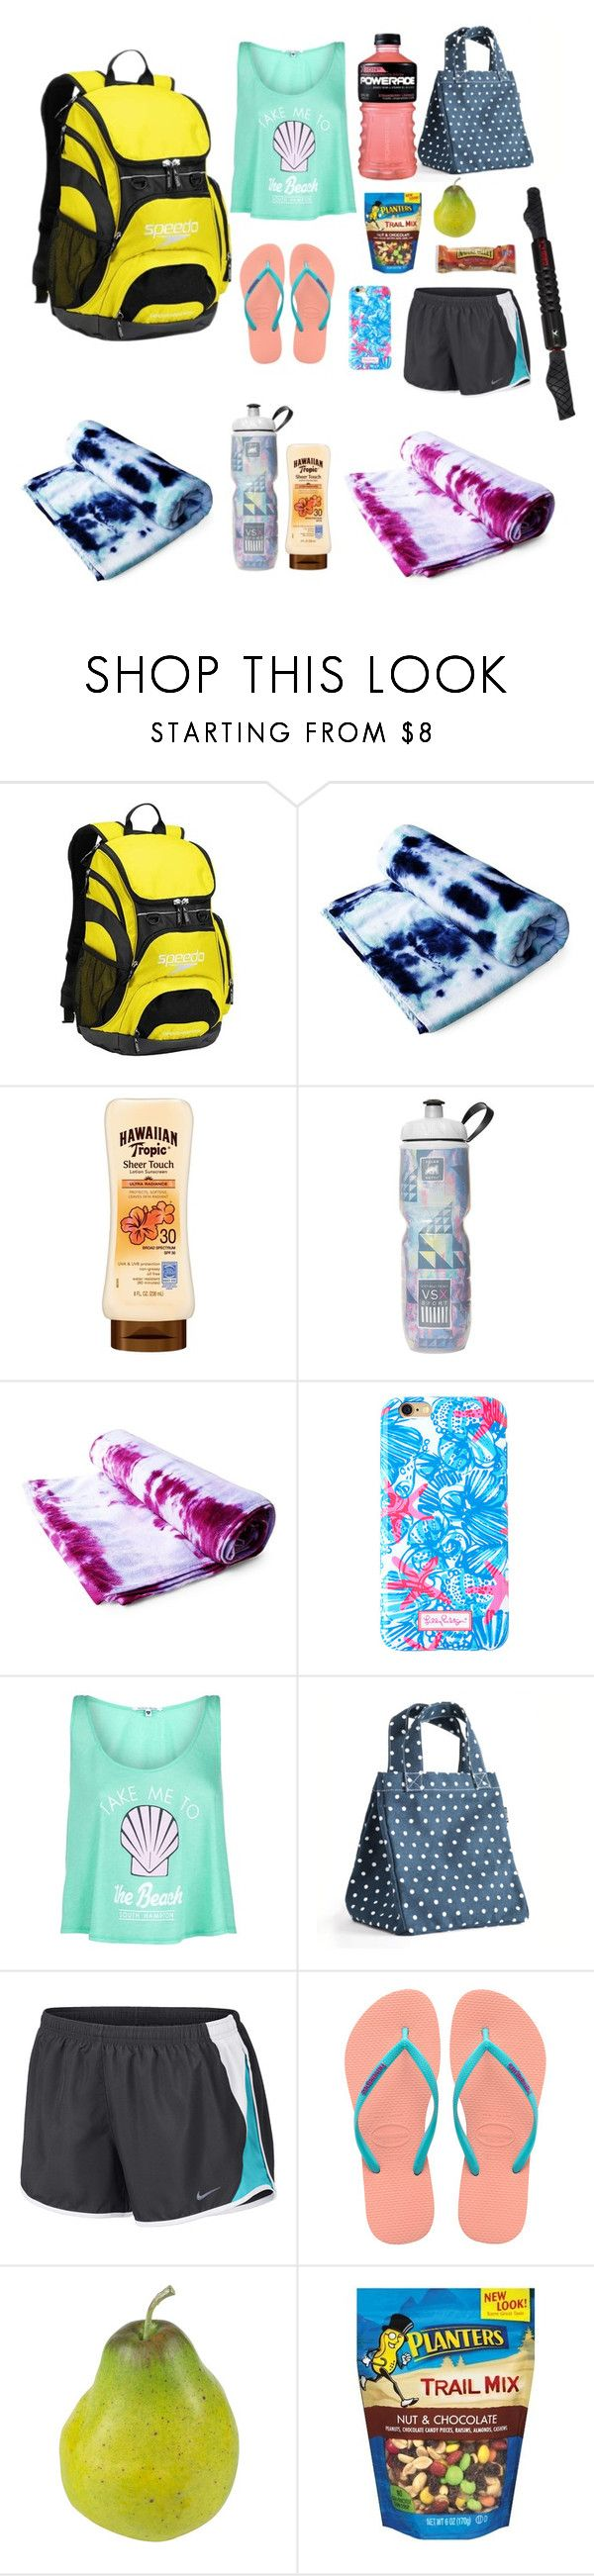 """Swim bag essential"" by s-margaret-daly on Polyvore featuring Speedo, Brika, Victoria Sport, Lilly Pulitzer, Wildfox, Maika, NIKE, Havaianas, Nearly Natural and TriggerPoint"